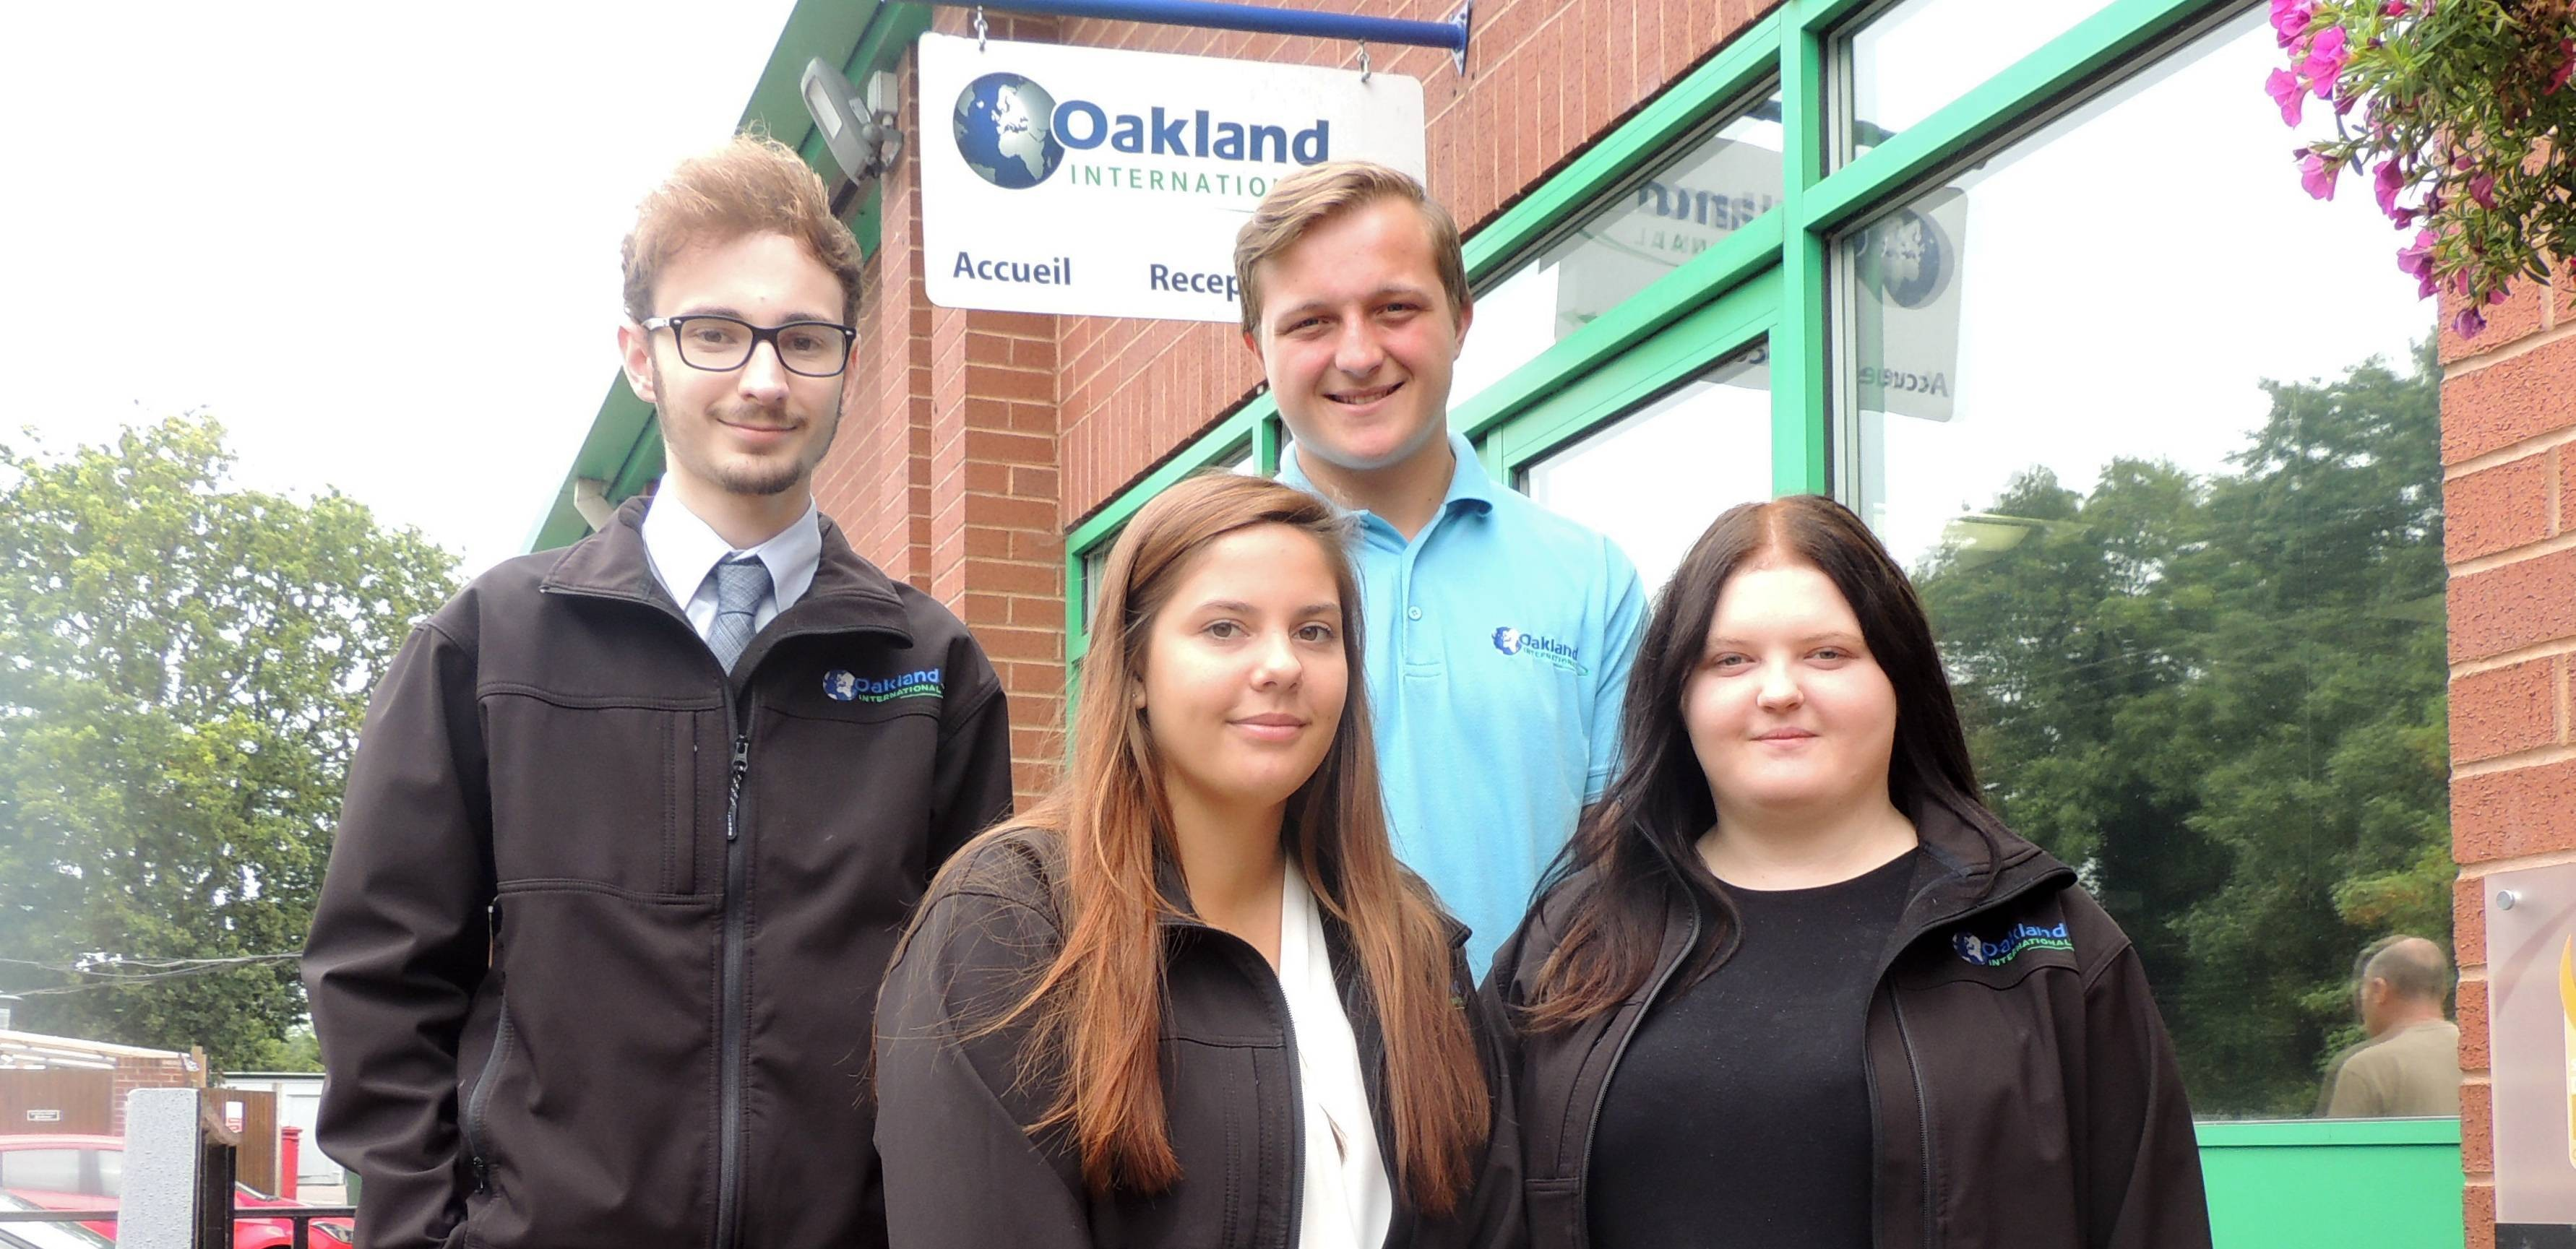 Apprenticeship Scheme Enjoys Success at Oakland International